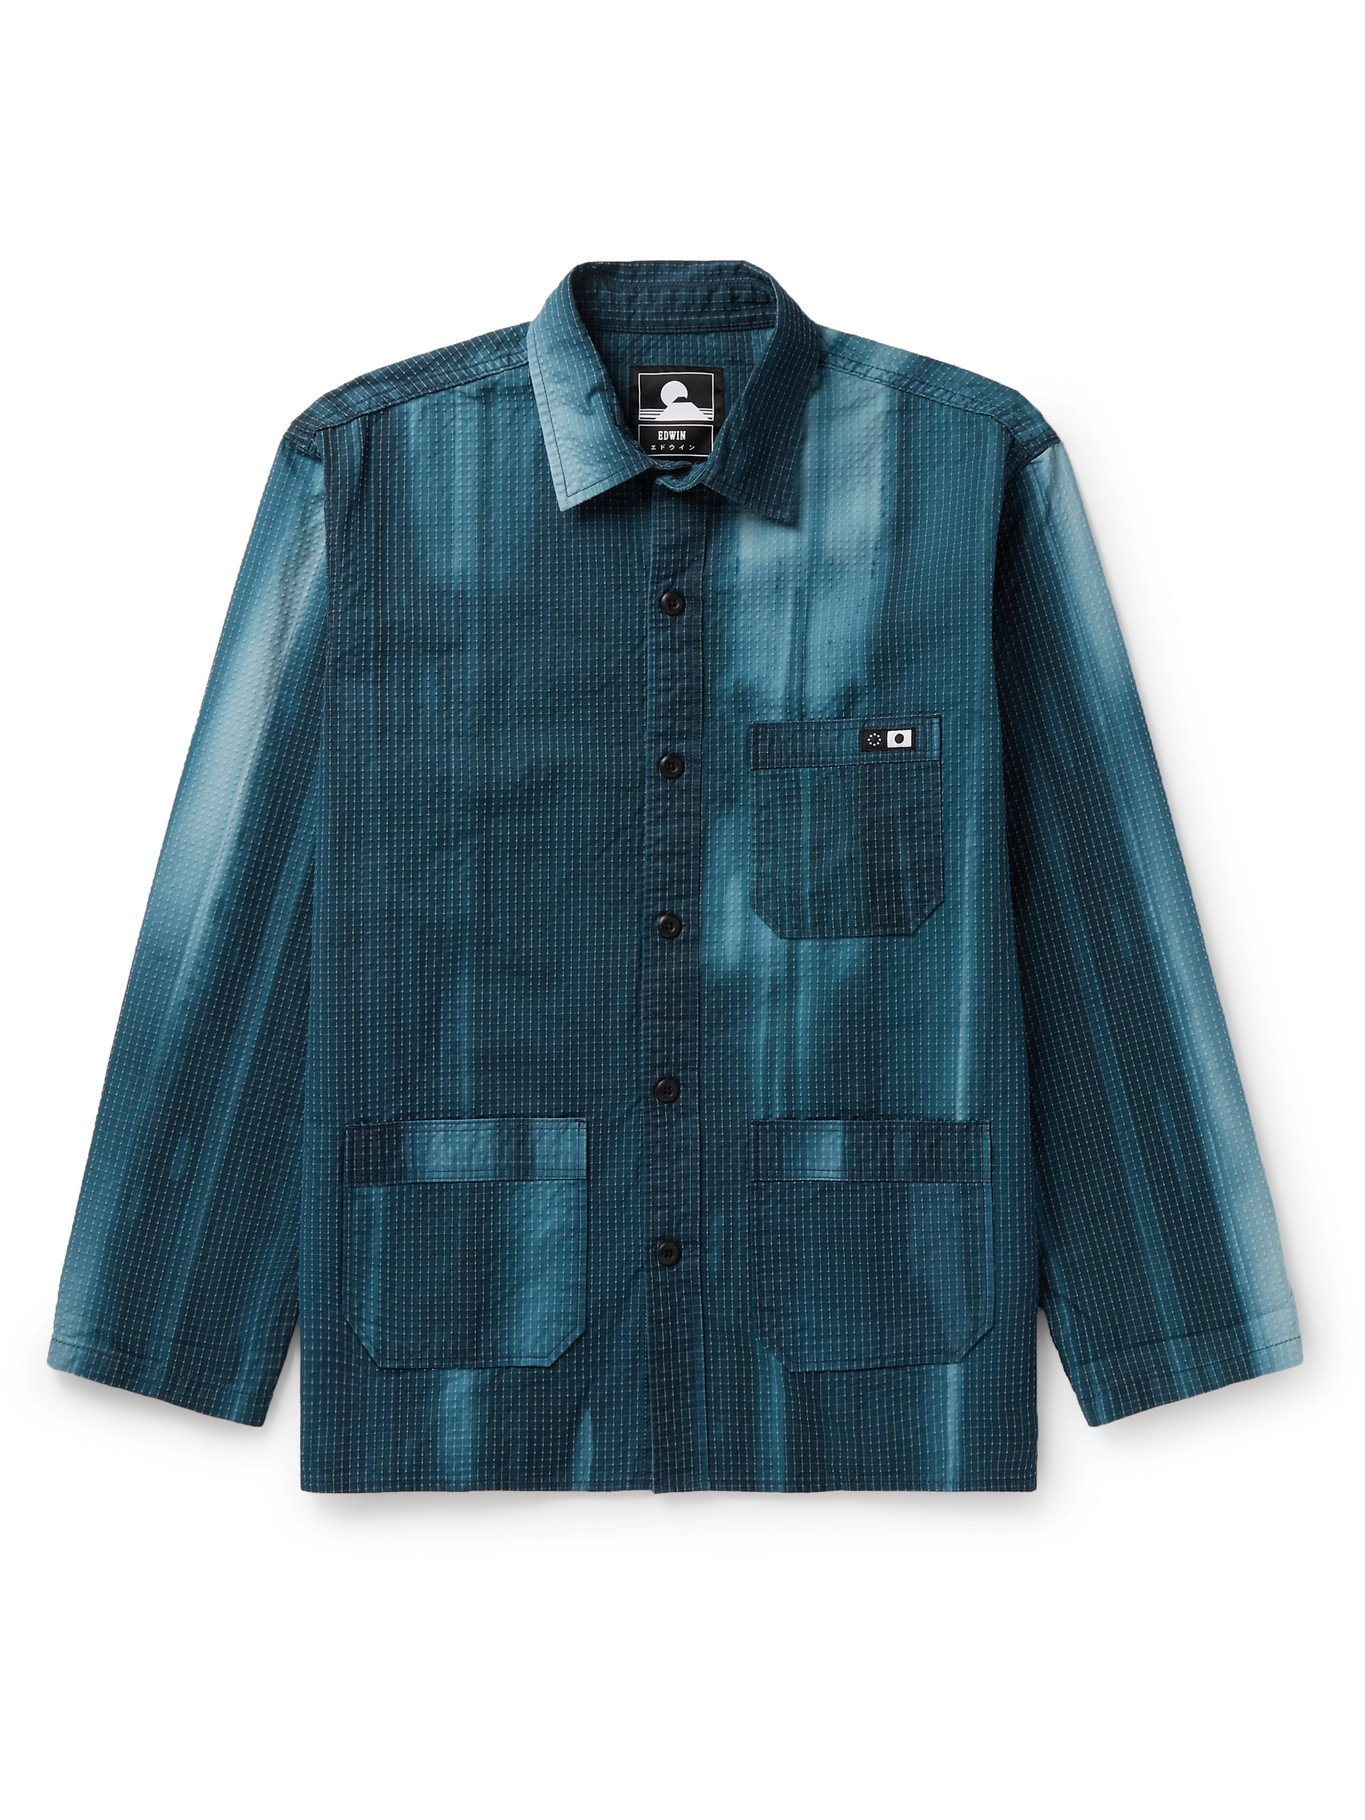 Photo: EDWIN - Major Tie-Dyed Enzyme-Washed Cotton-Blend Ripstop Shirt Jacket - Blue